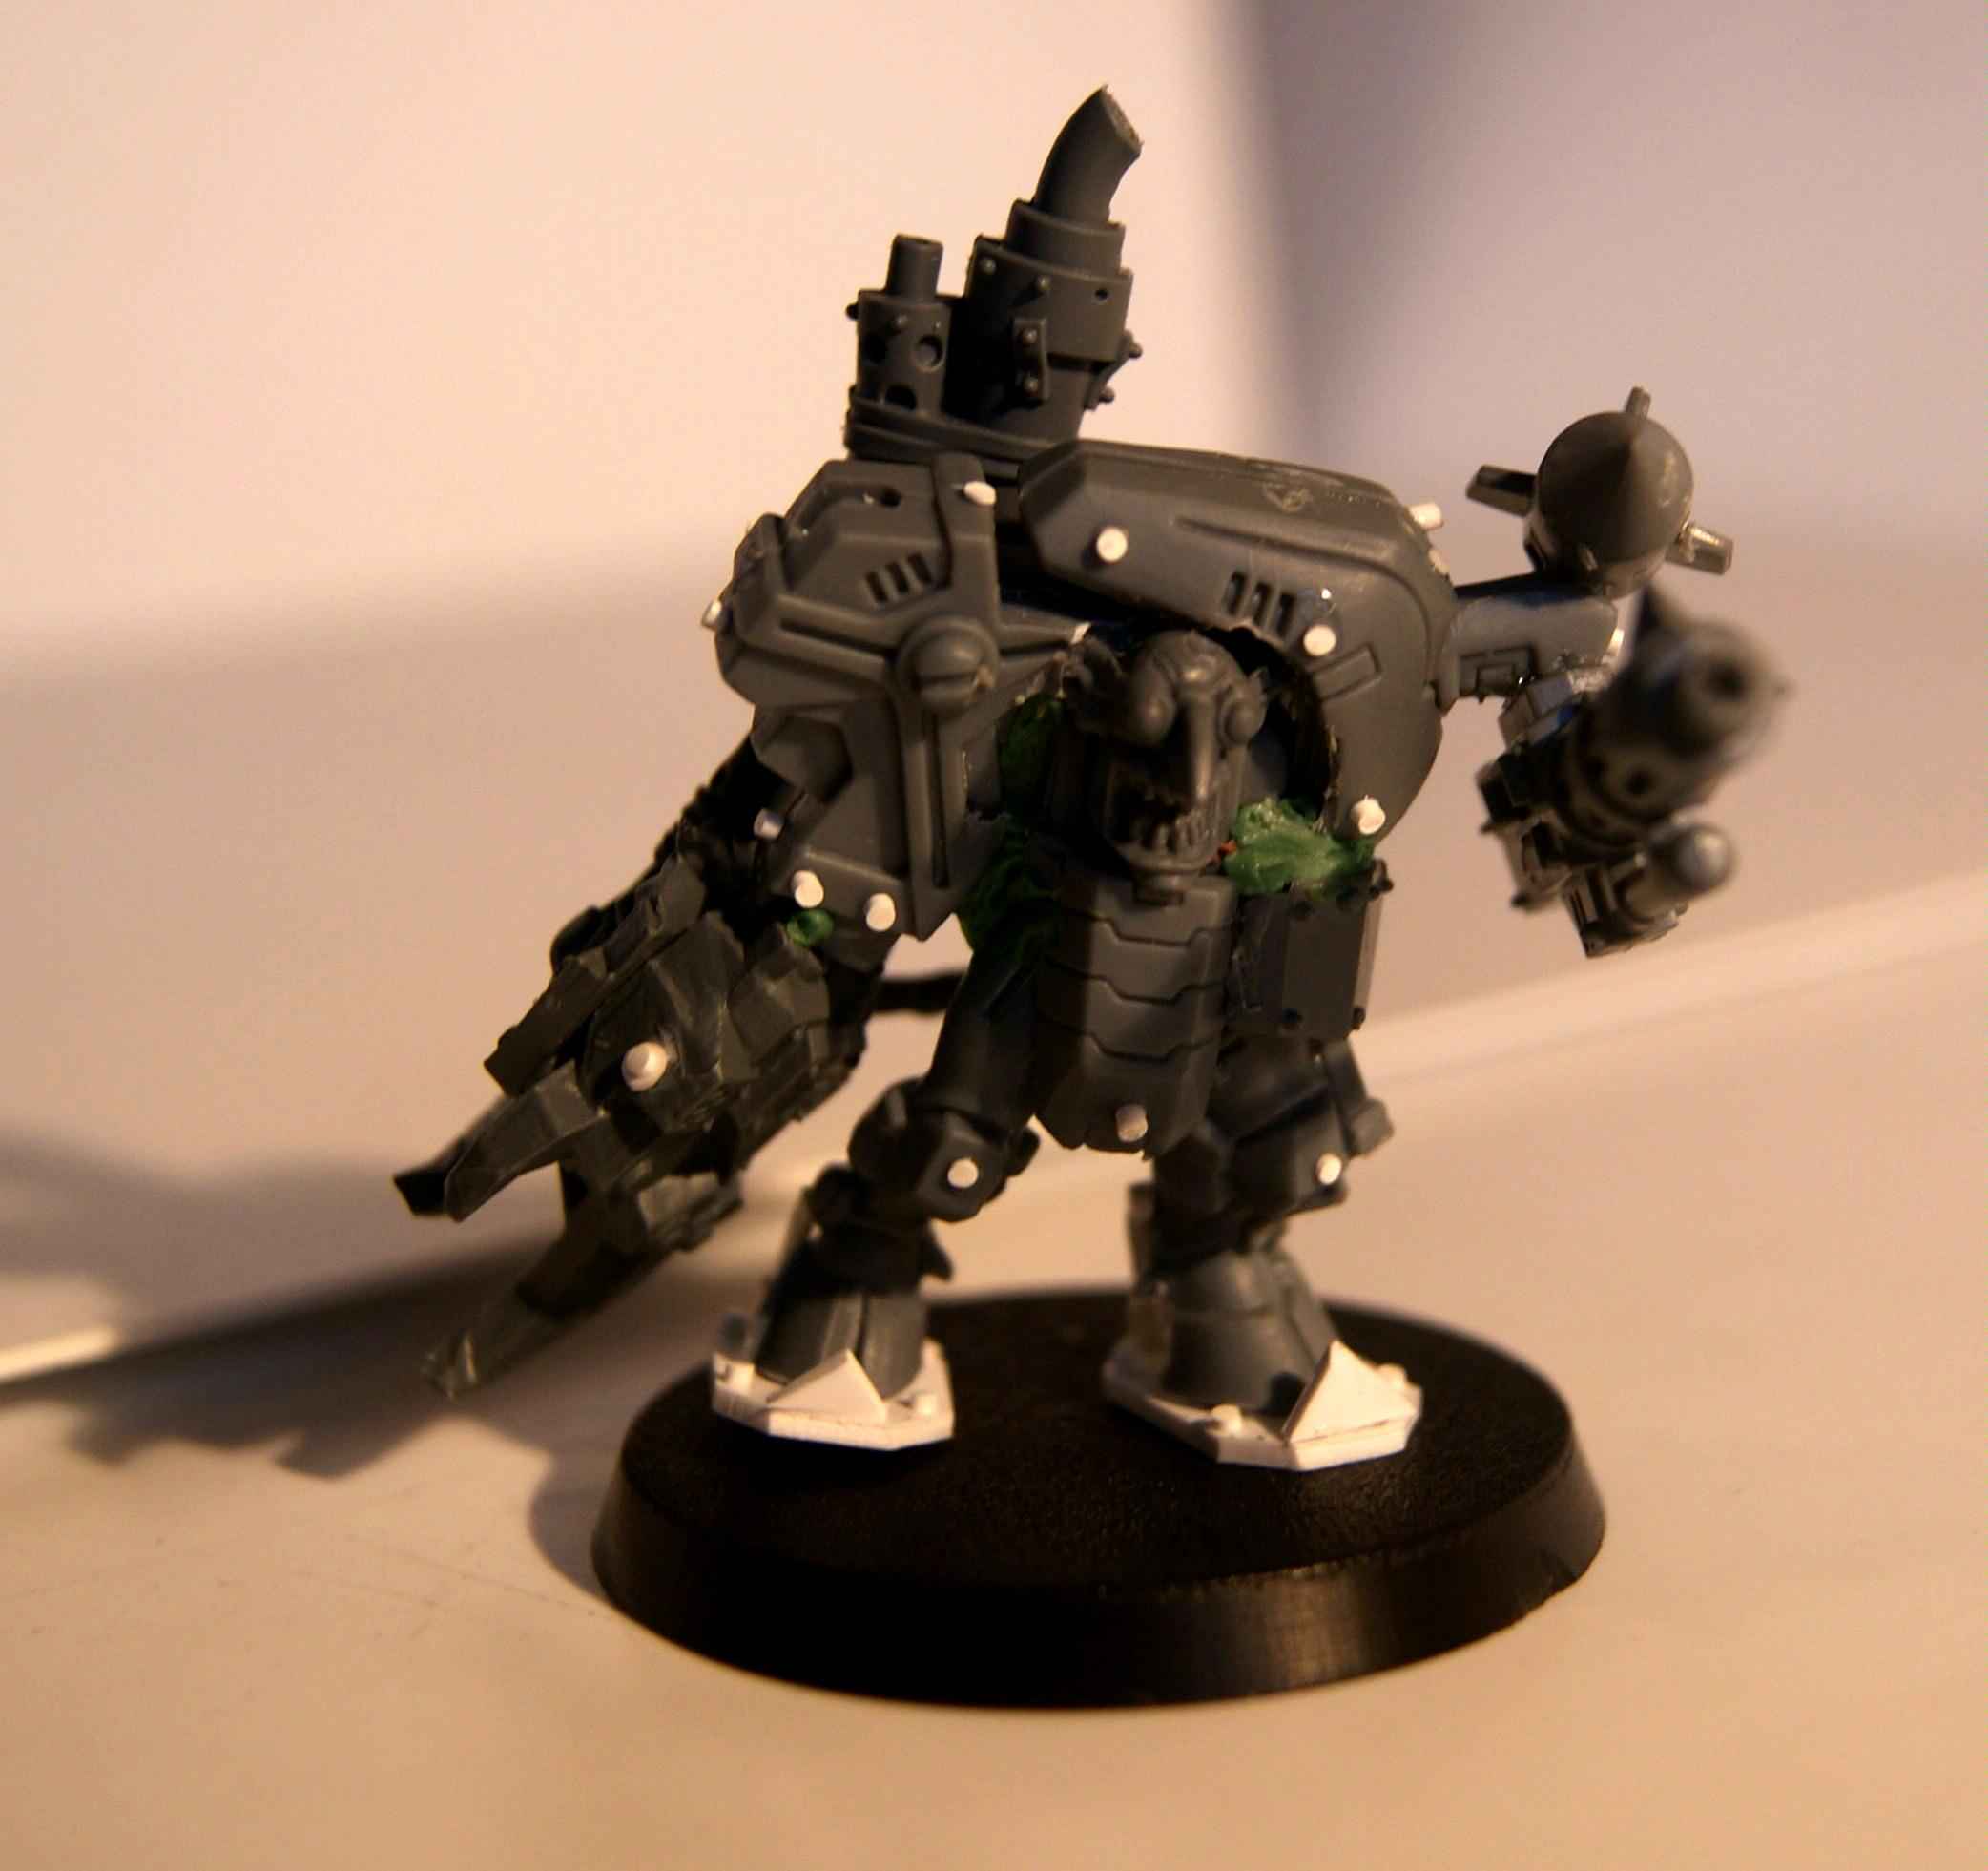 Conversion, Grot Rebellion, Grot Rebels, Grots, Orks, Warhammer 40,000